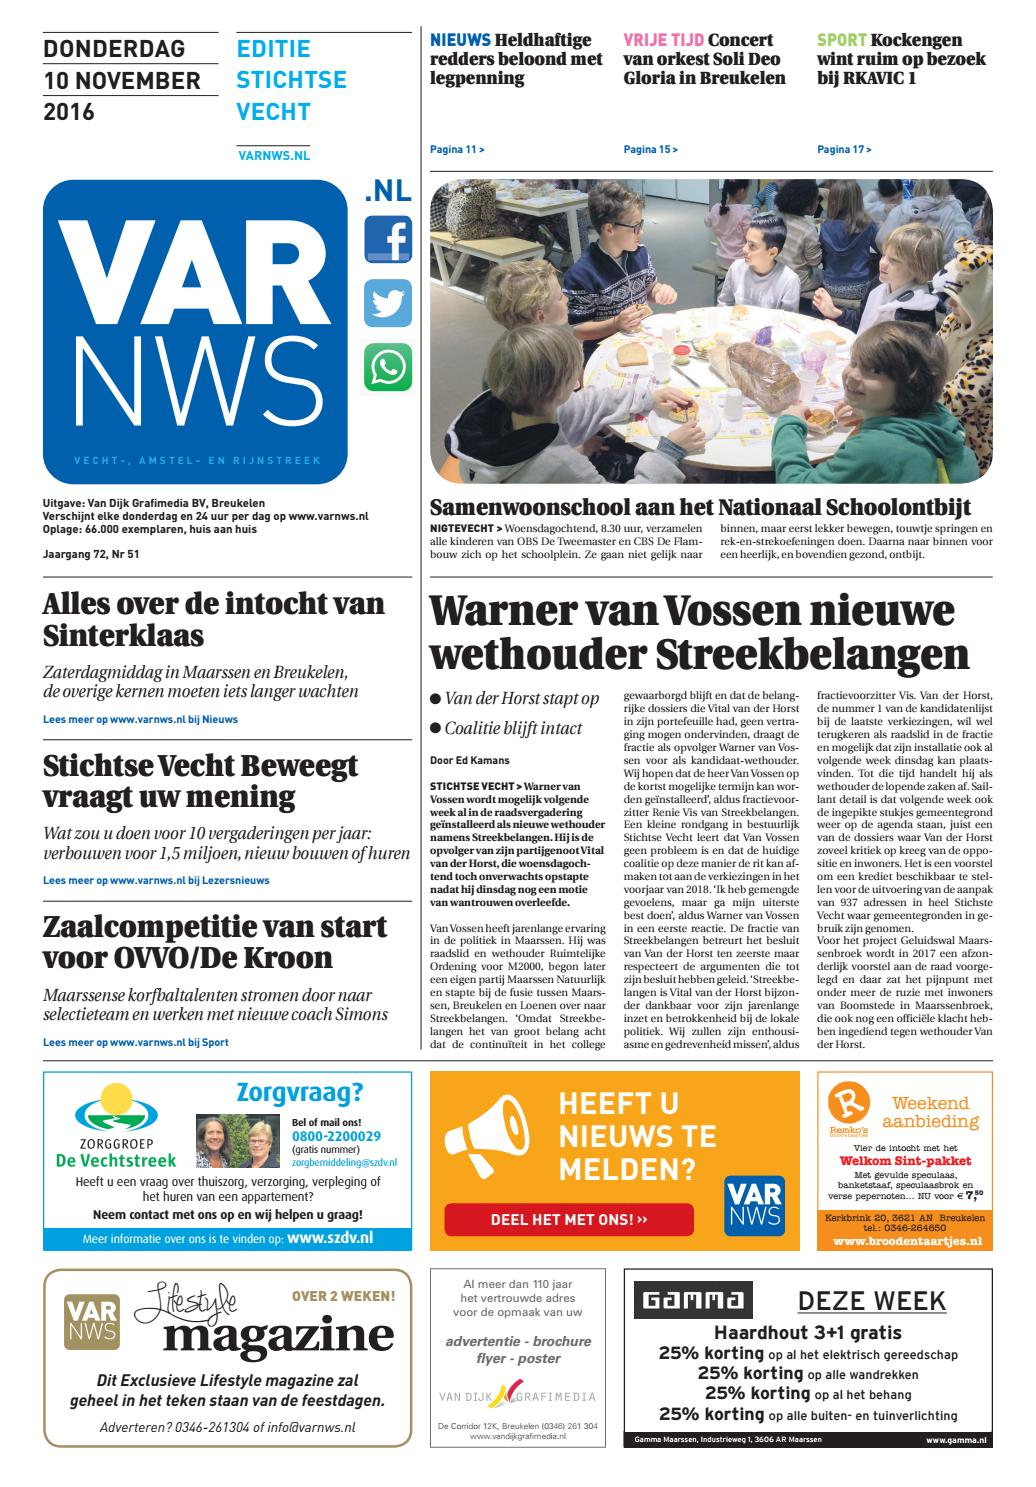 62ada0fba12 VARnws Stichtse Vecht 10 november 2016 by VARnws - issuu